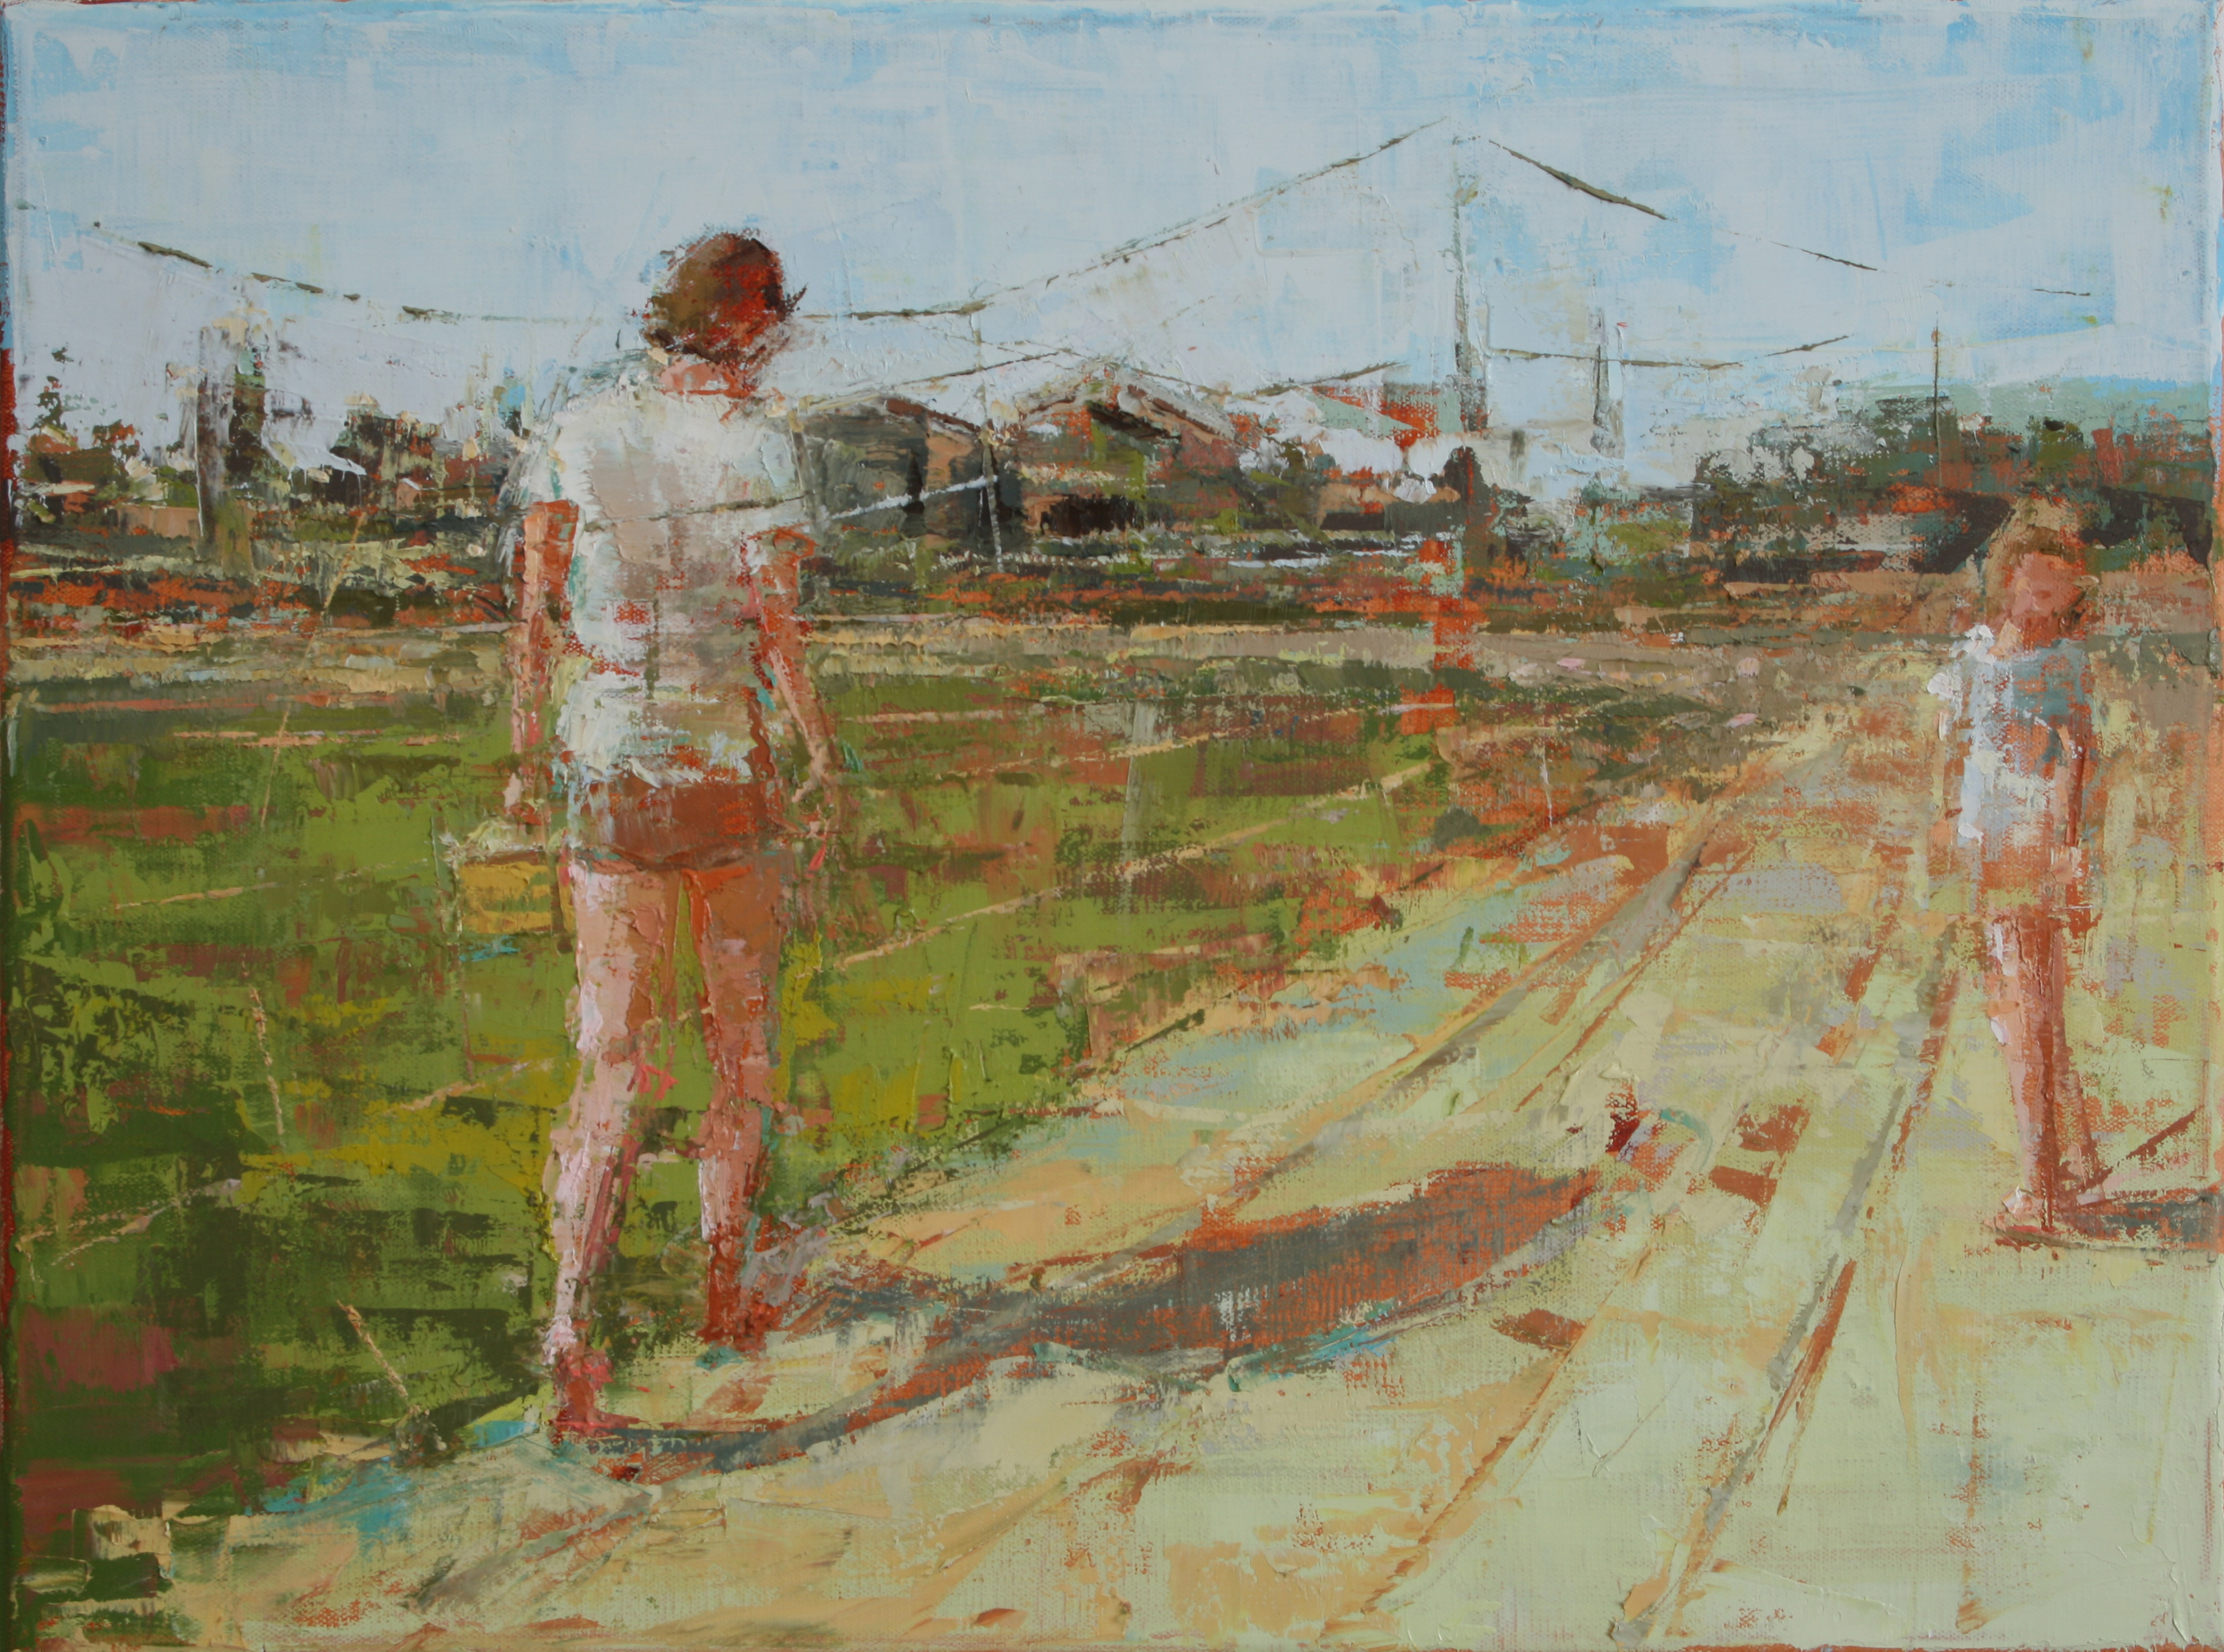 """Walking on a Dirt Road, oil on linen, 12"""" x 16"""", 2010, Private Collection"""